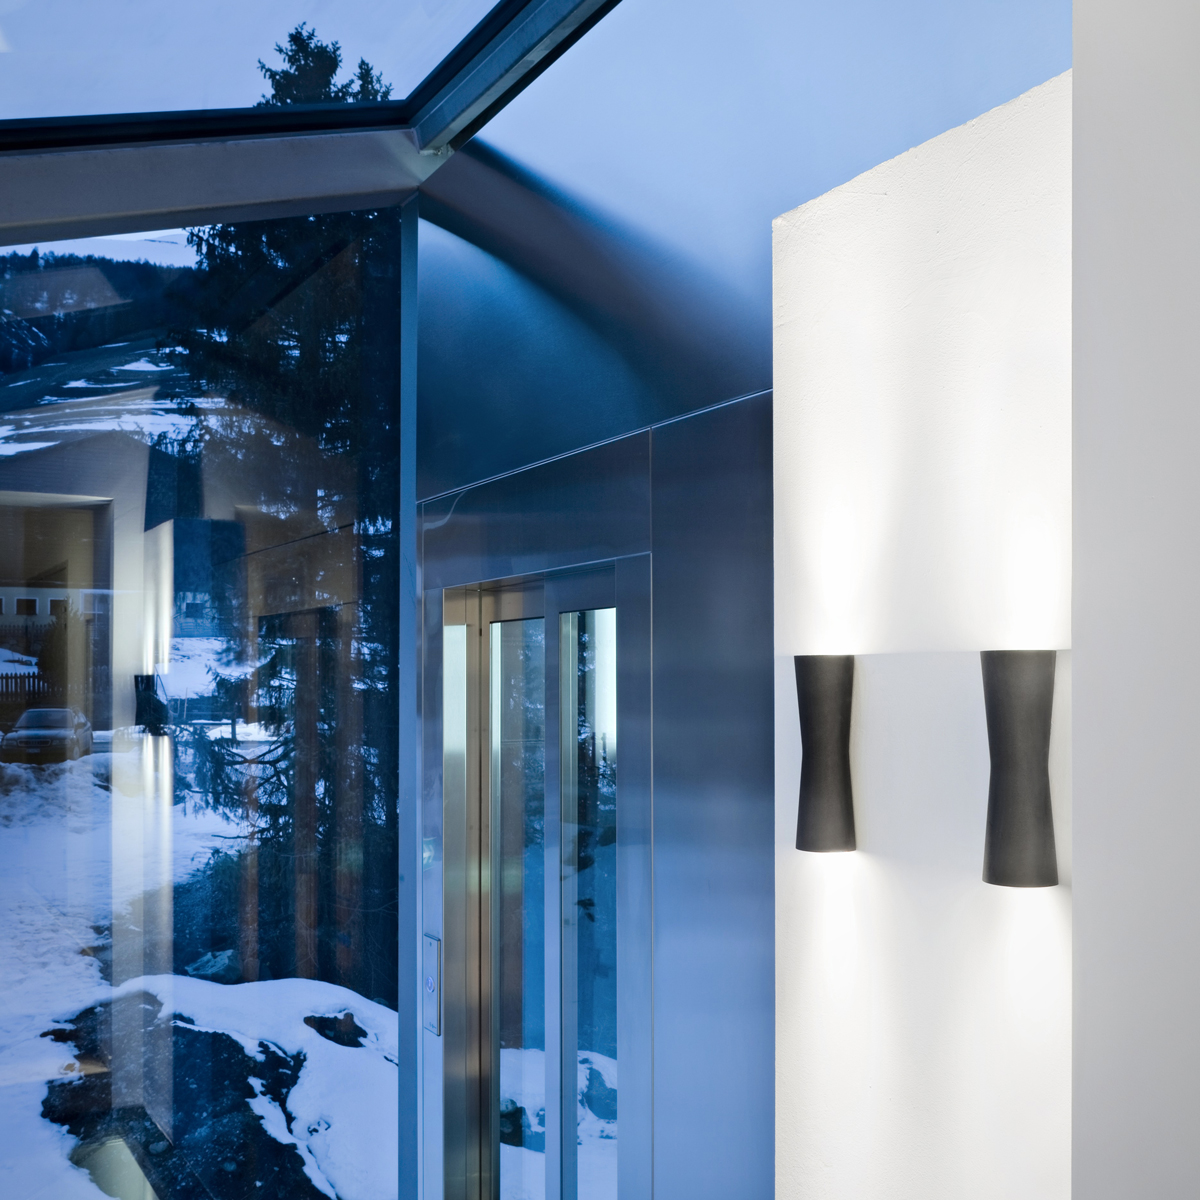 Ada Compliant Wall Lighting That Meet The Requirements